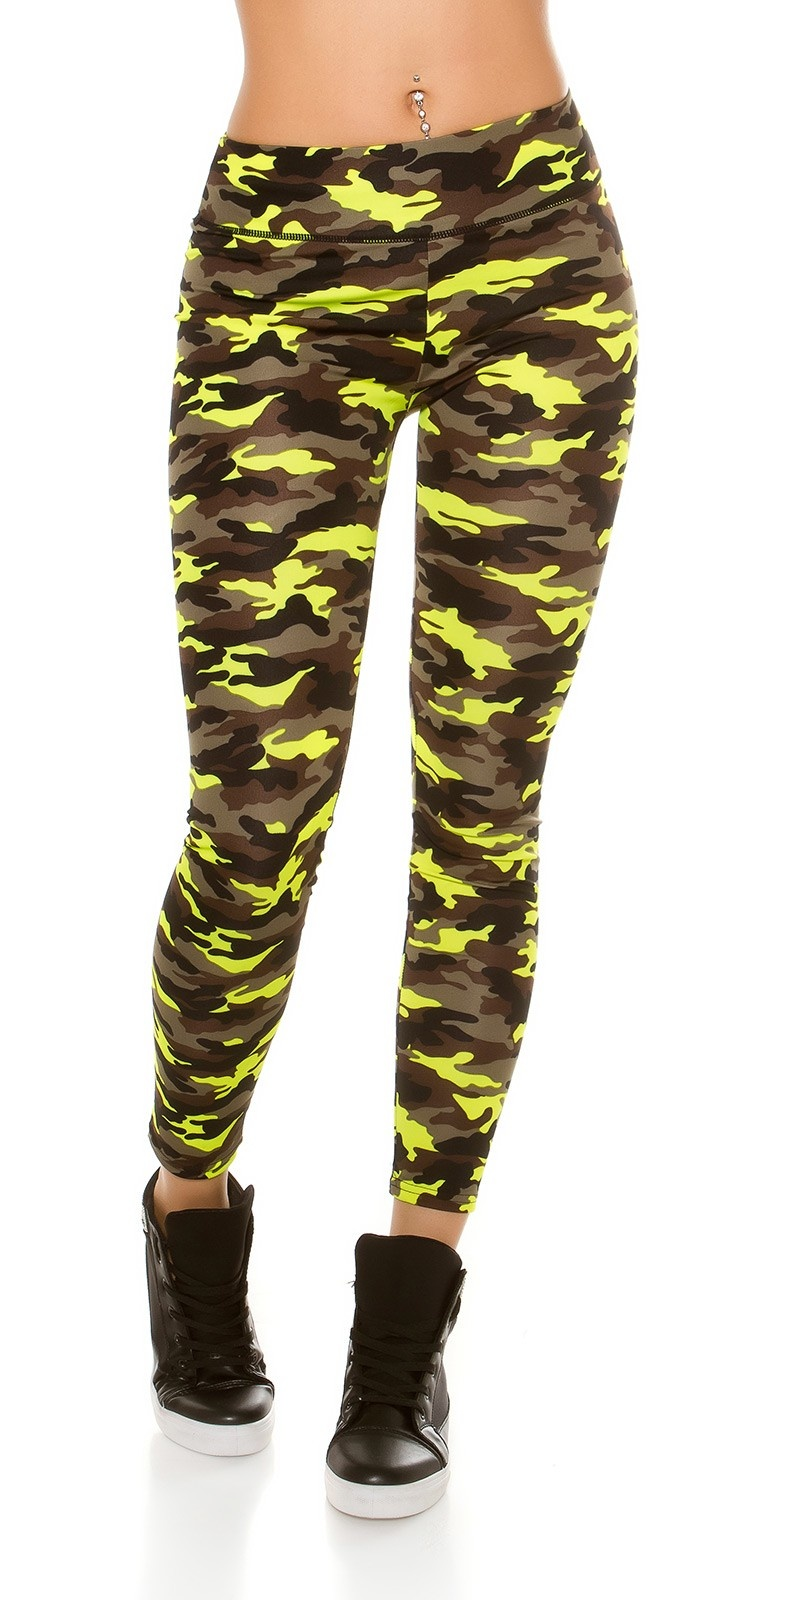 Trendy workout-sport leggings in camouflage neongeel